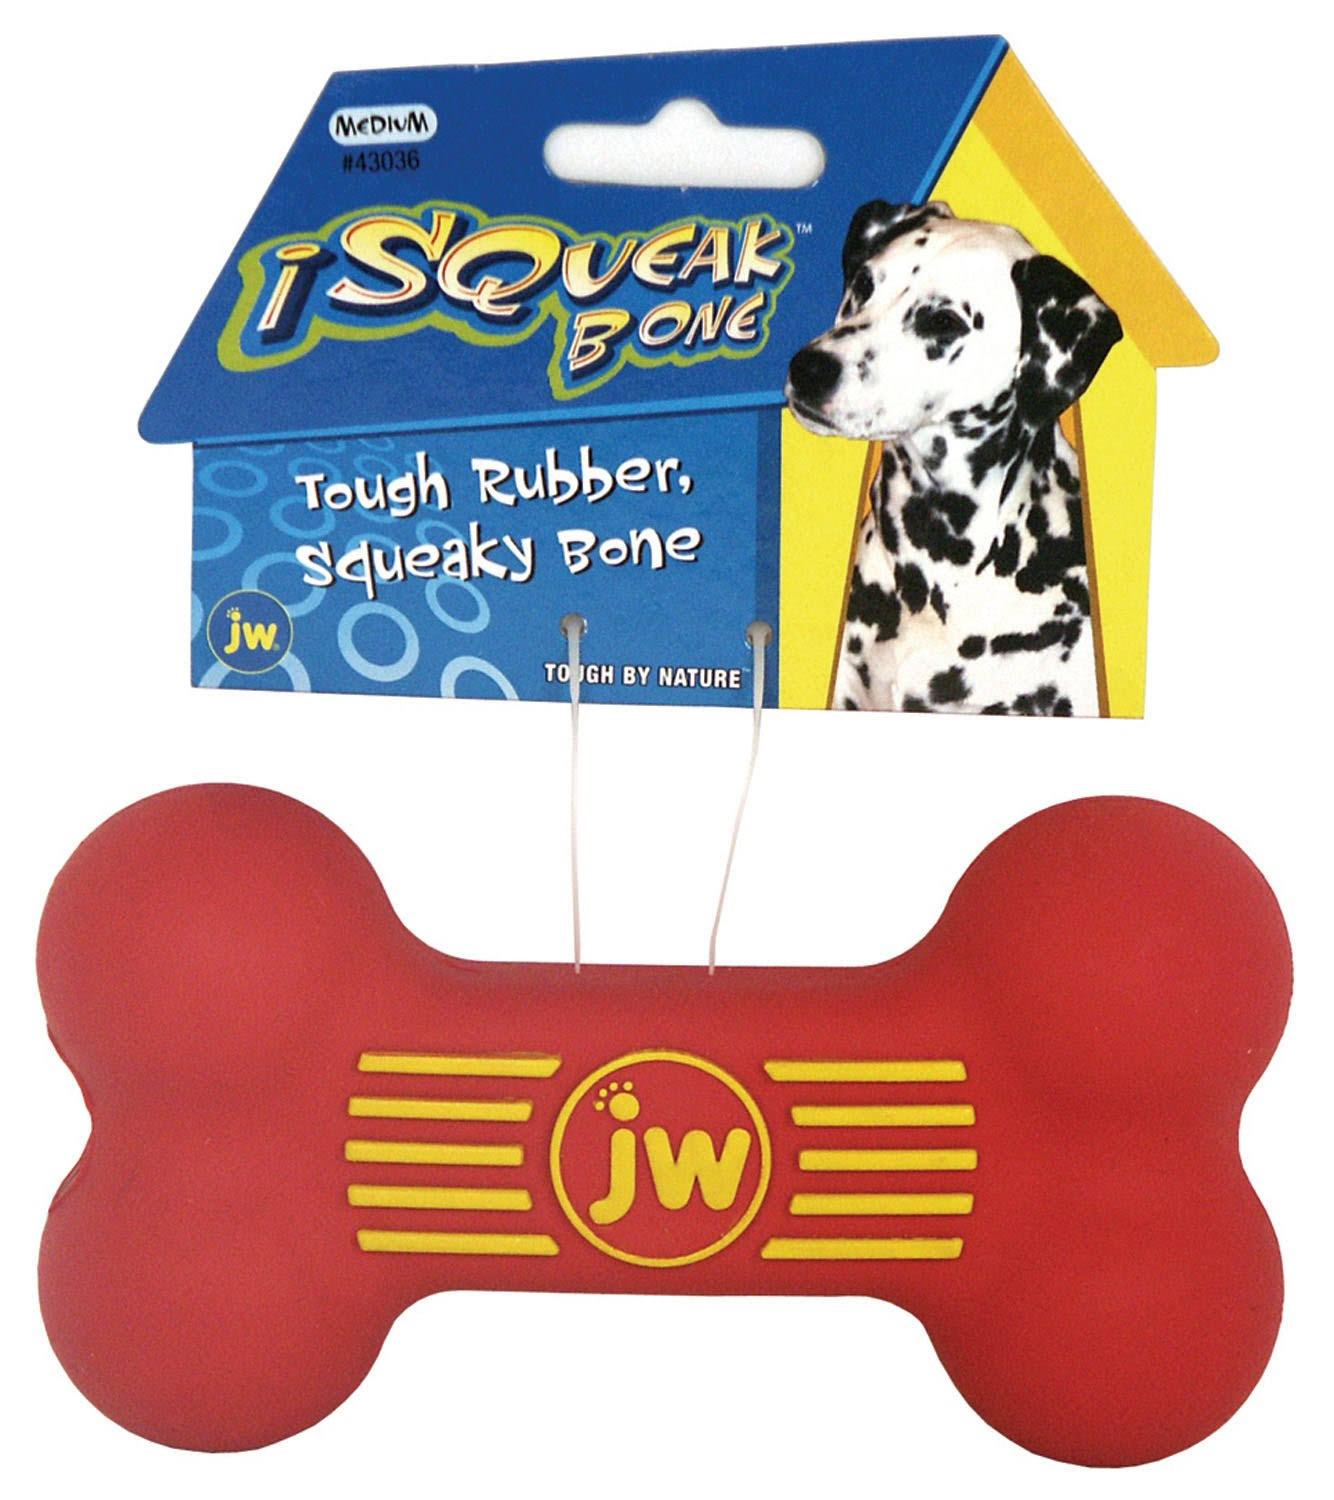 JW Pet Company iSqueak Bone Rubber Dog Toy - Medium, Colors Vary